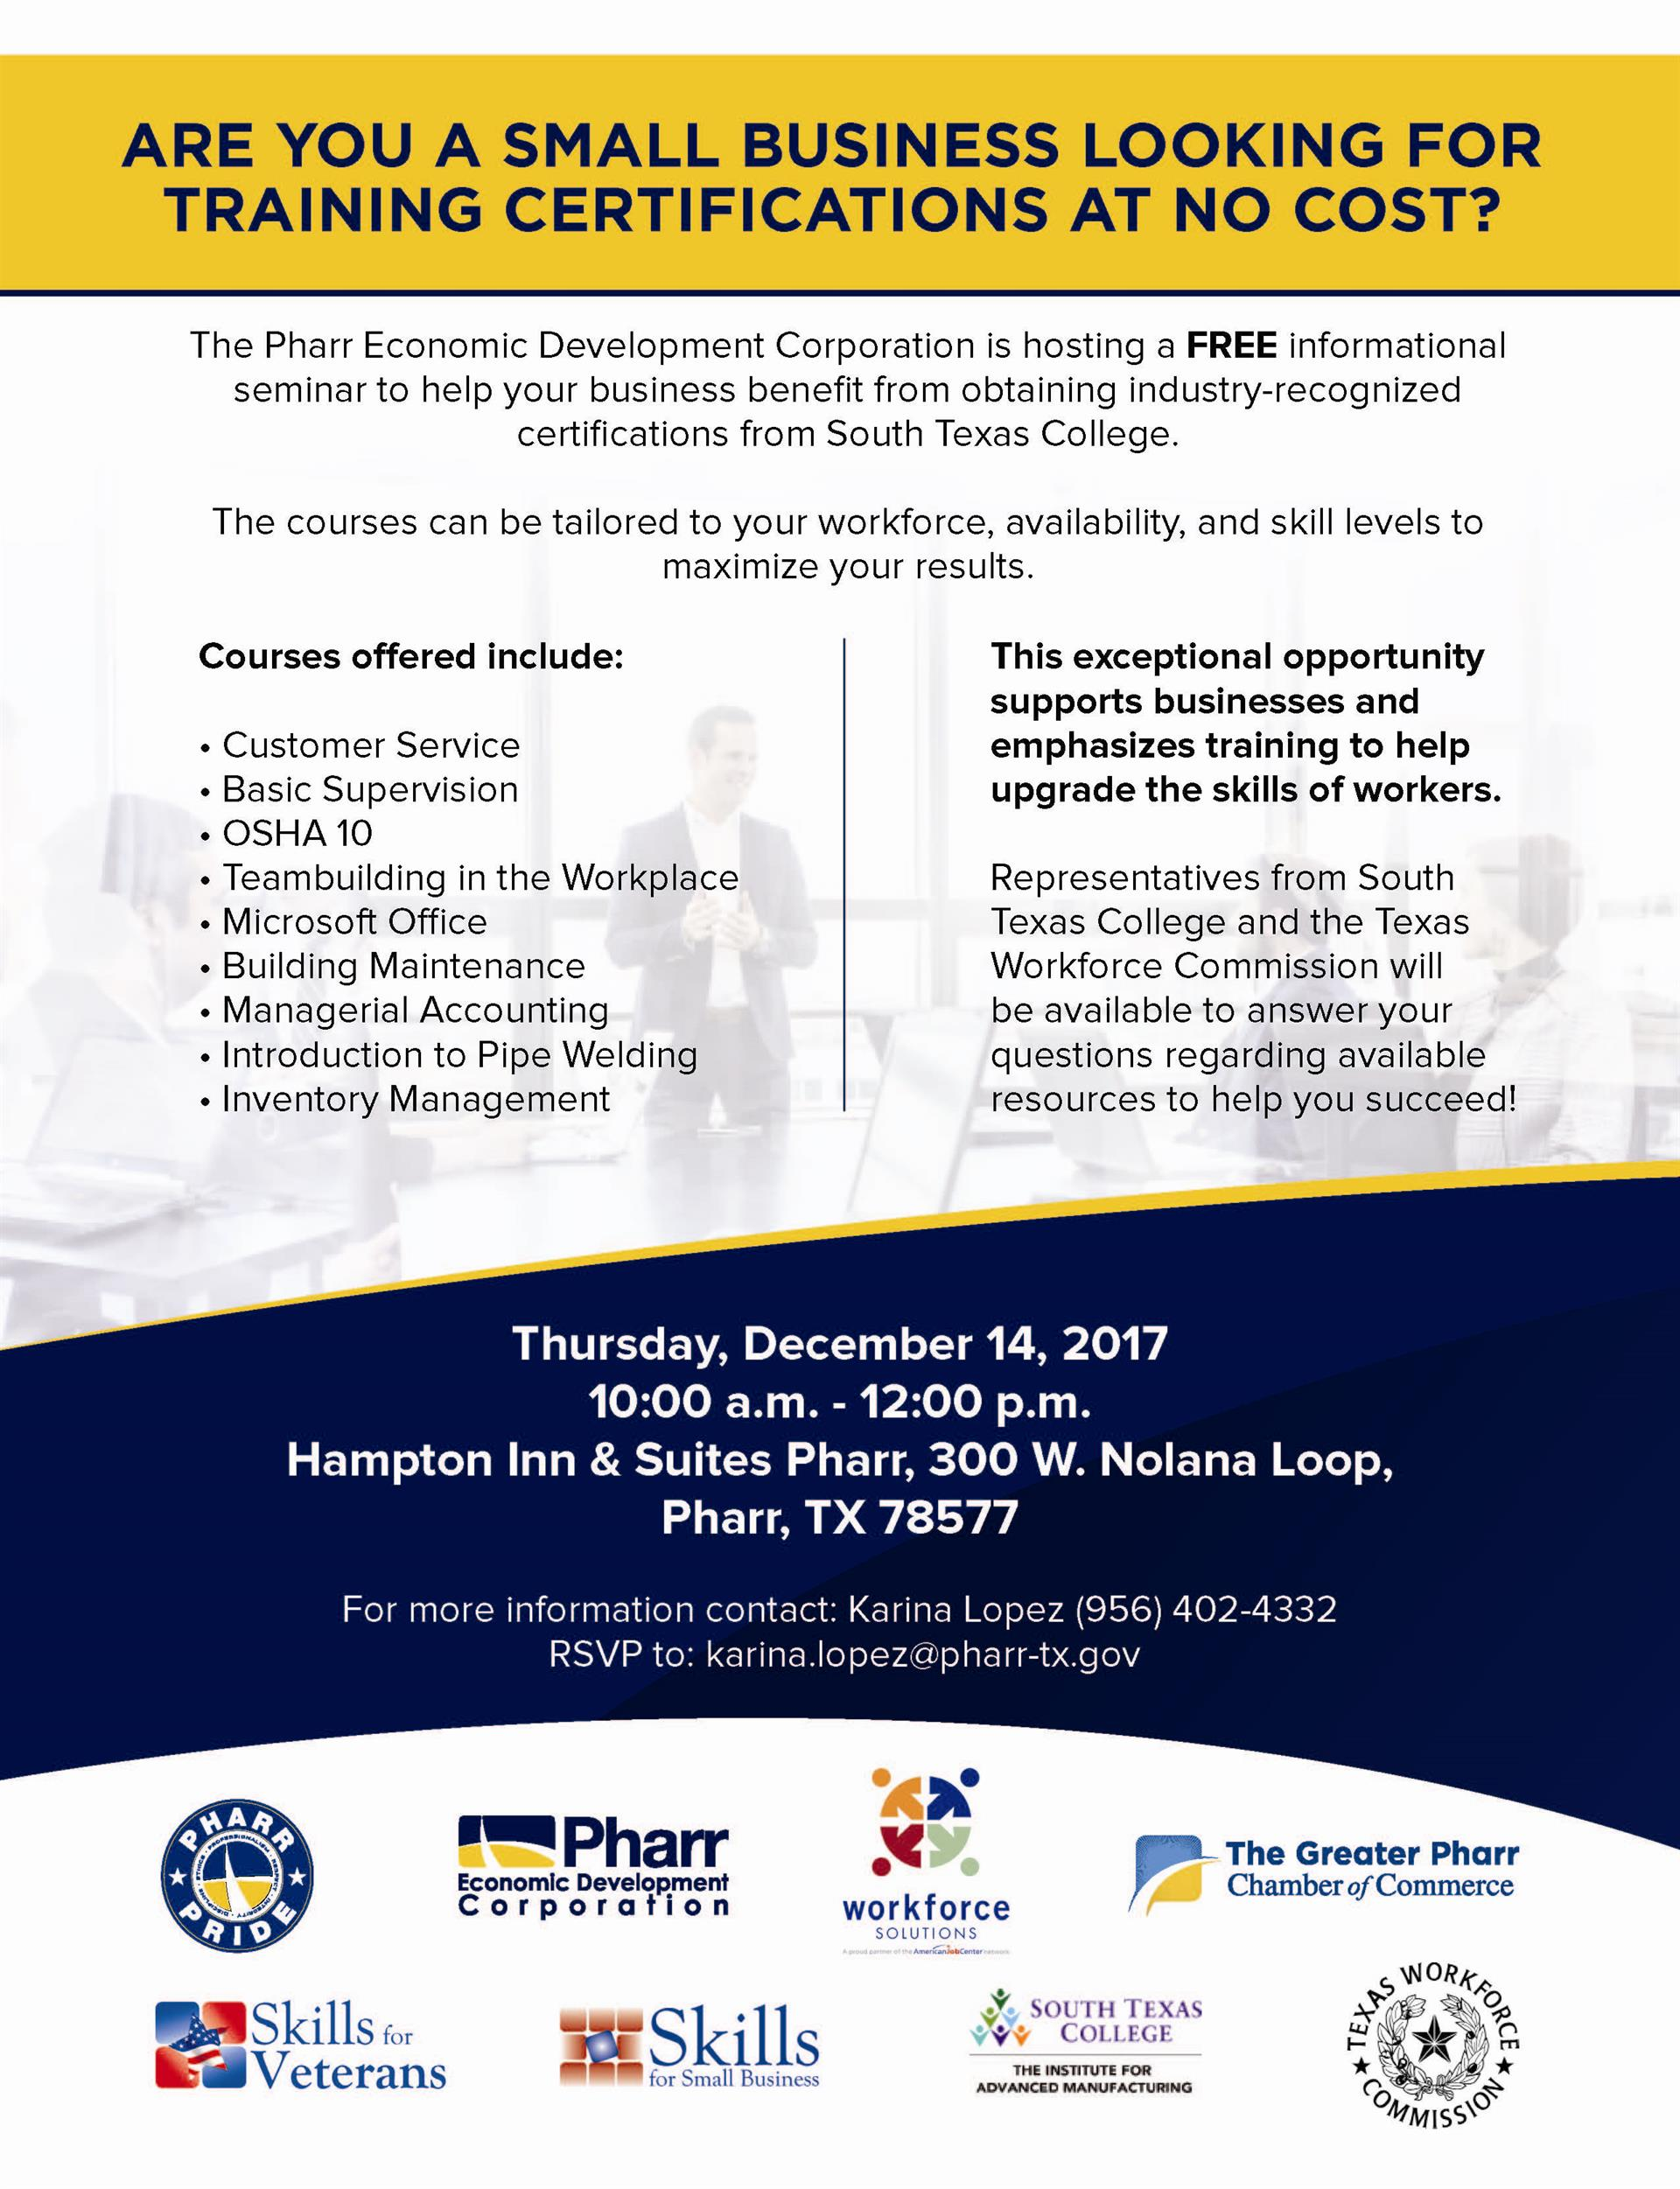 Are You A Small Business Seeking Training To Upgrade The Skills Of Your Workers Pharr Economic Development Corporation Is Hosting This Free Seminar